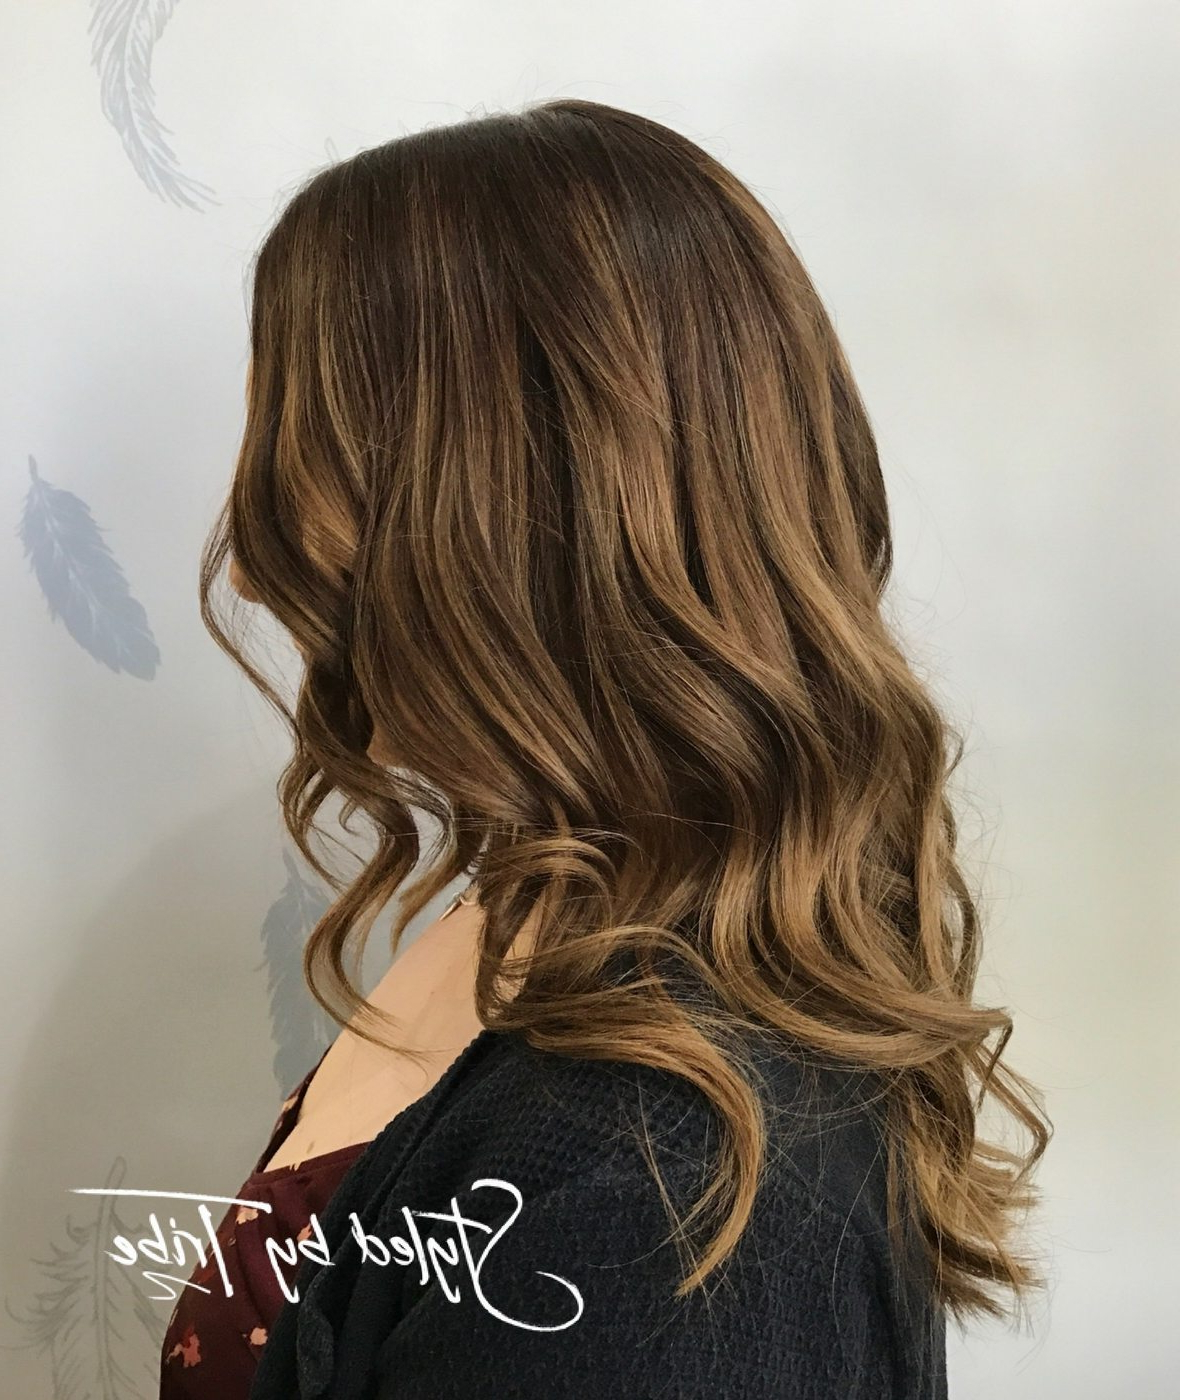 Styleddanielle – Tribe In Well Liked Balayage Hairstyles For Long Layers (Gallery 16 of 20)